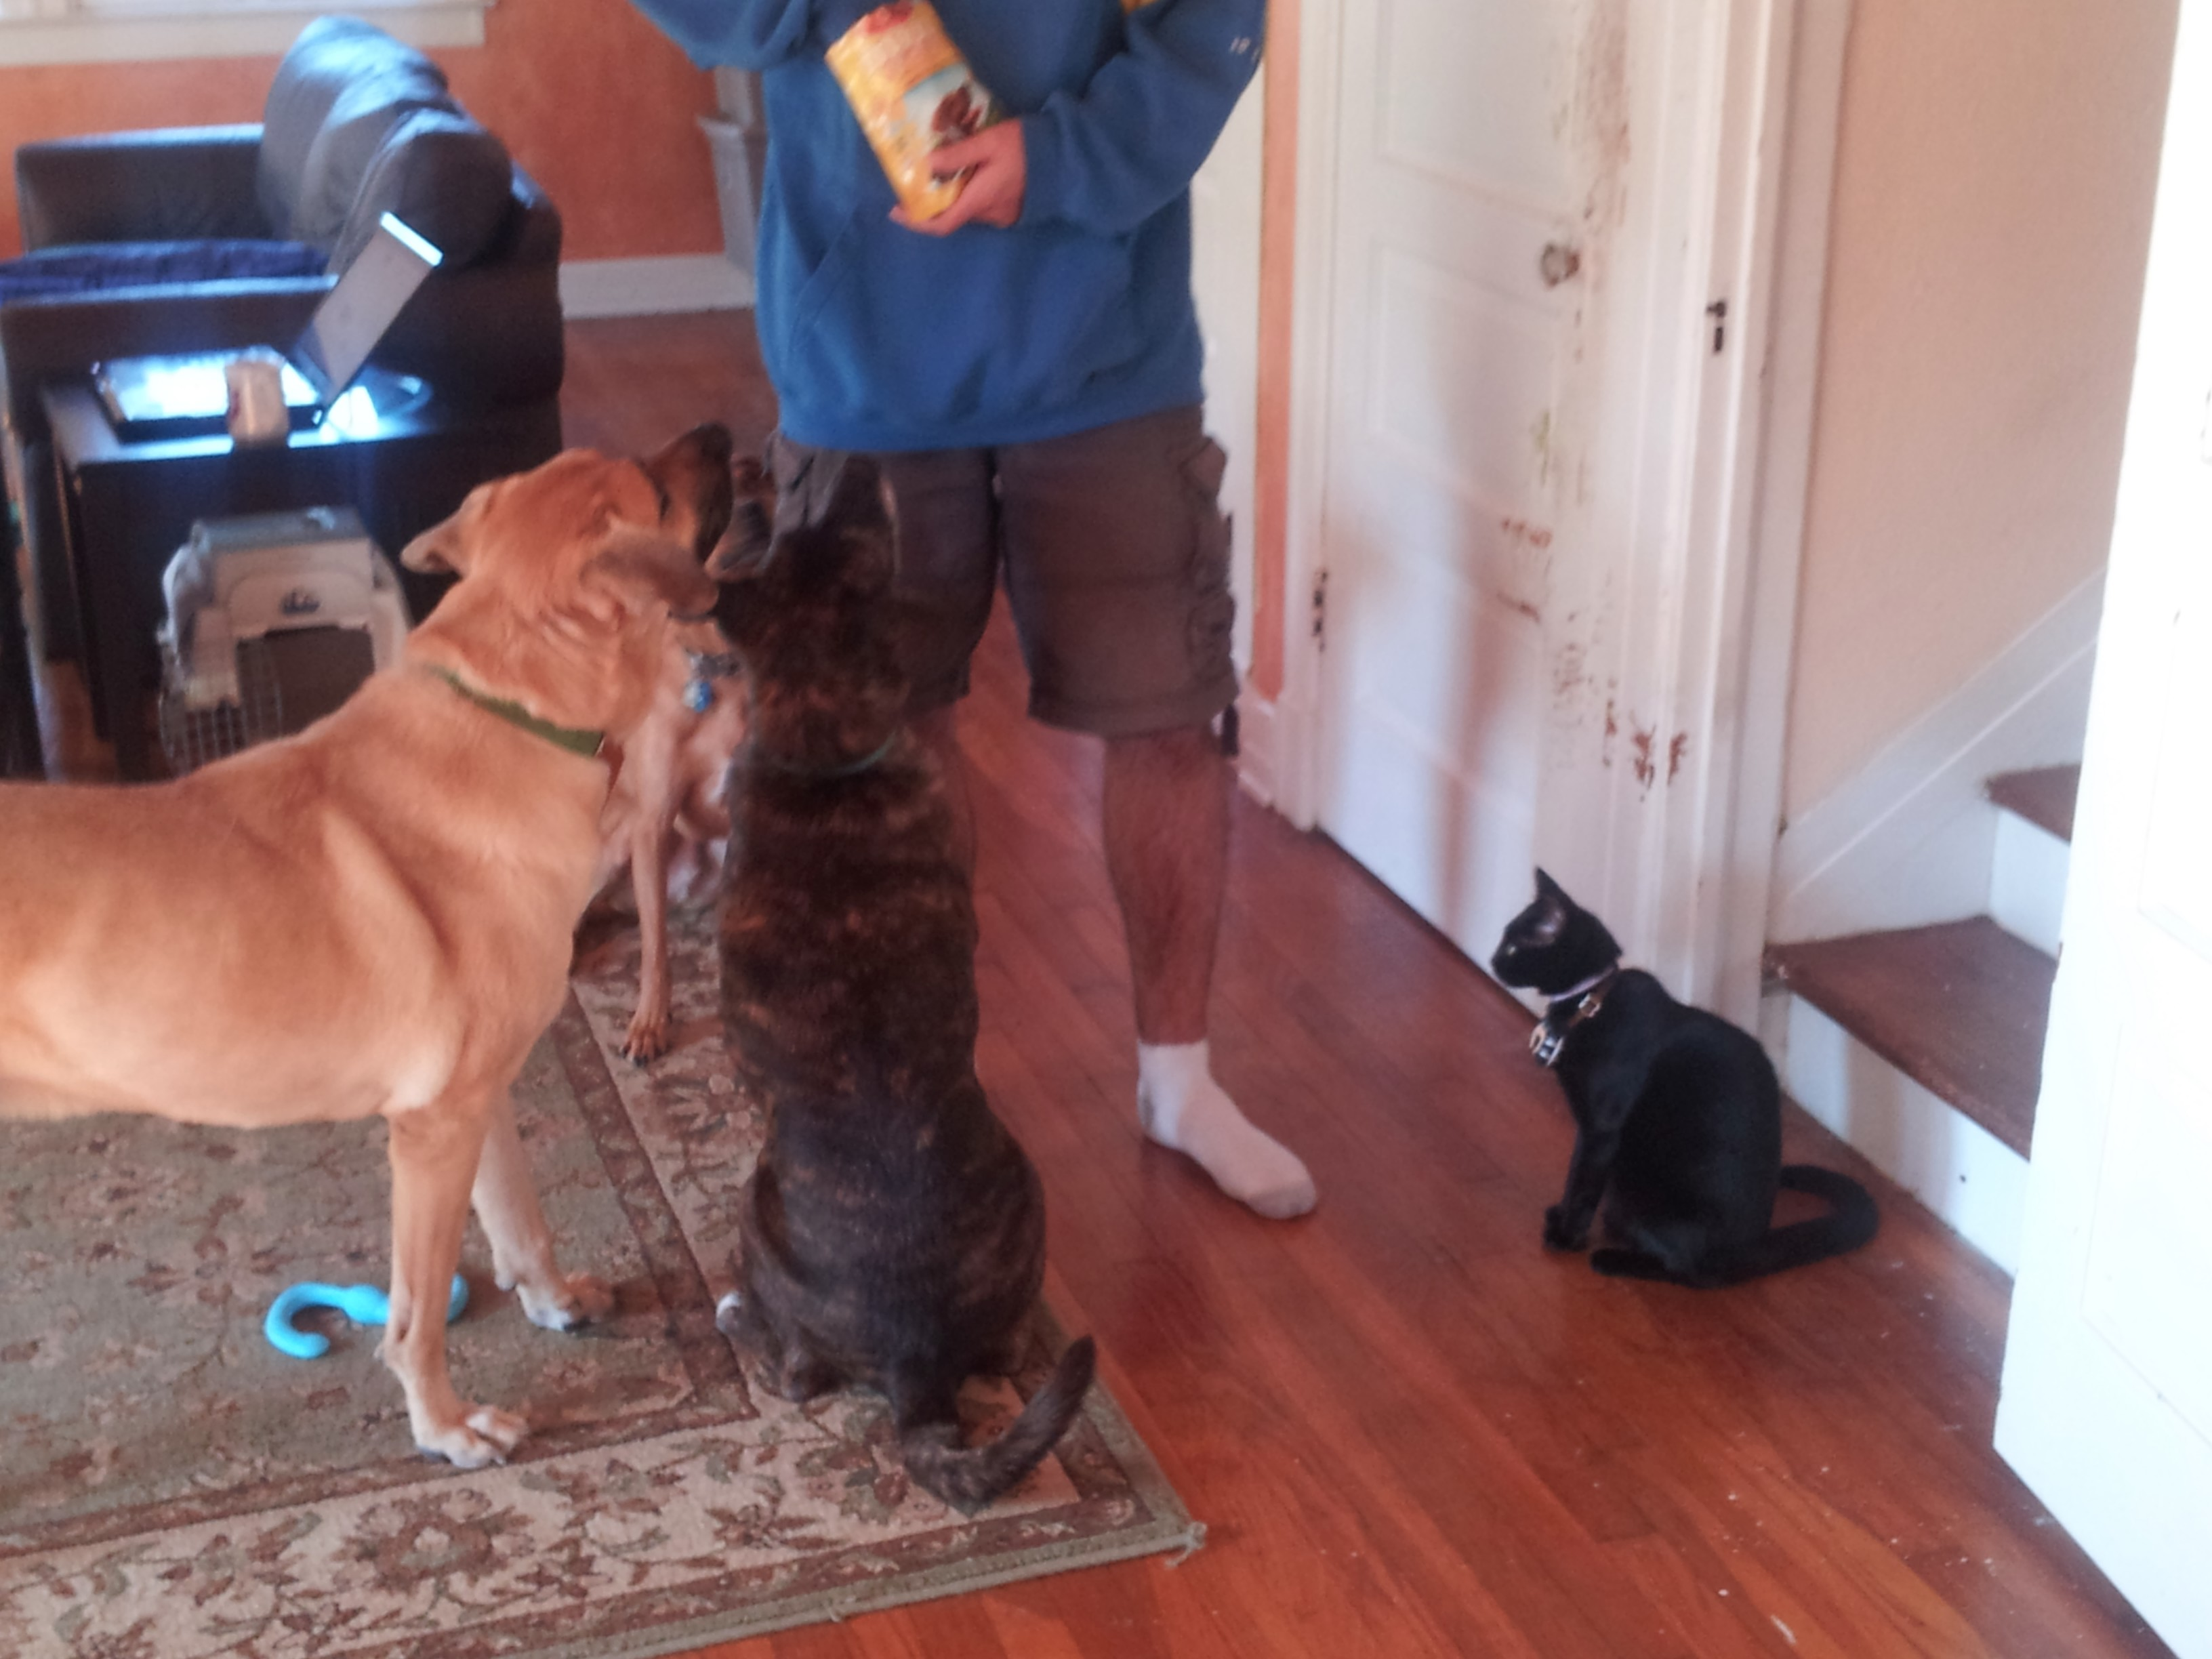 handing out treats